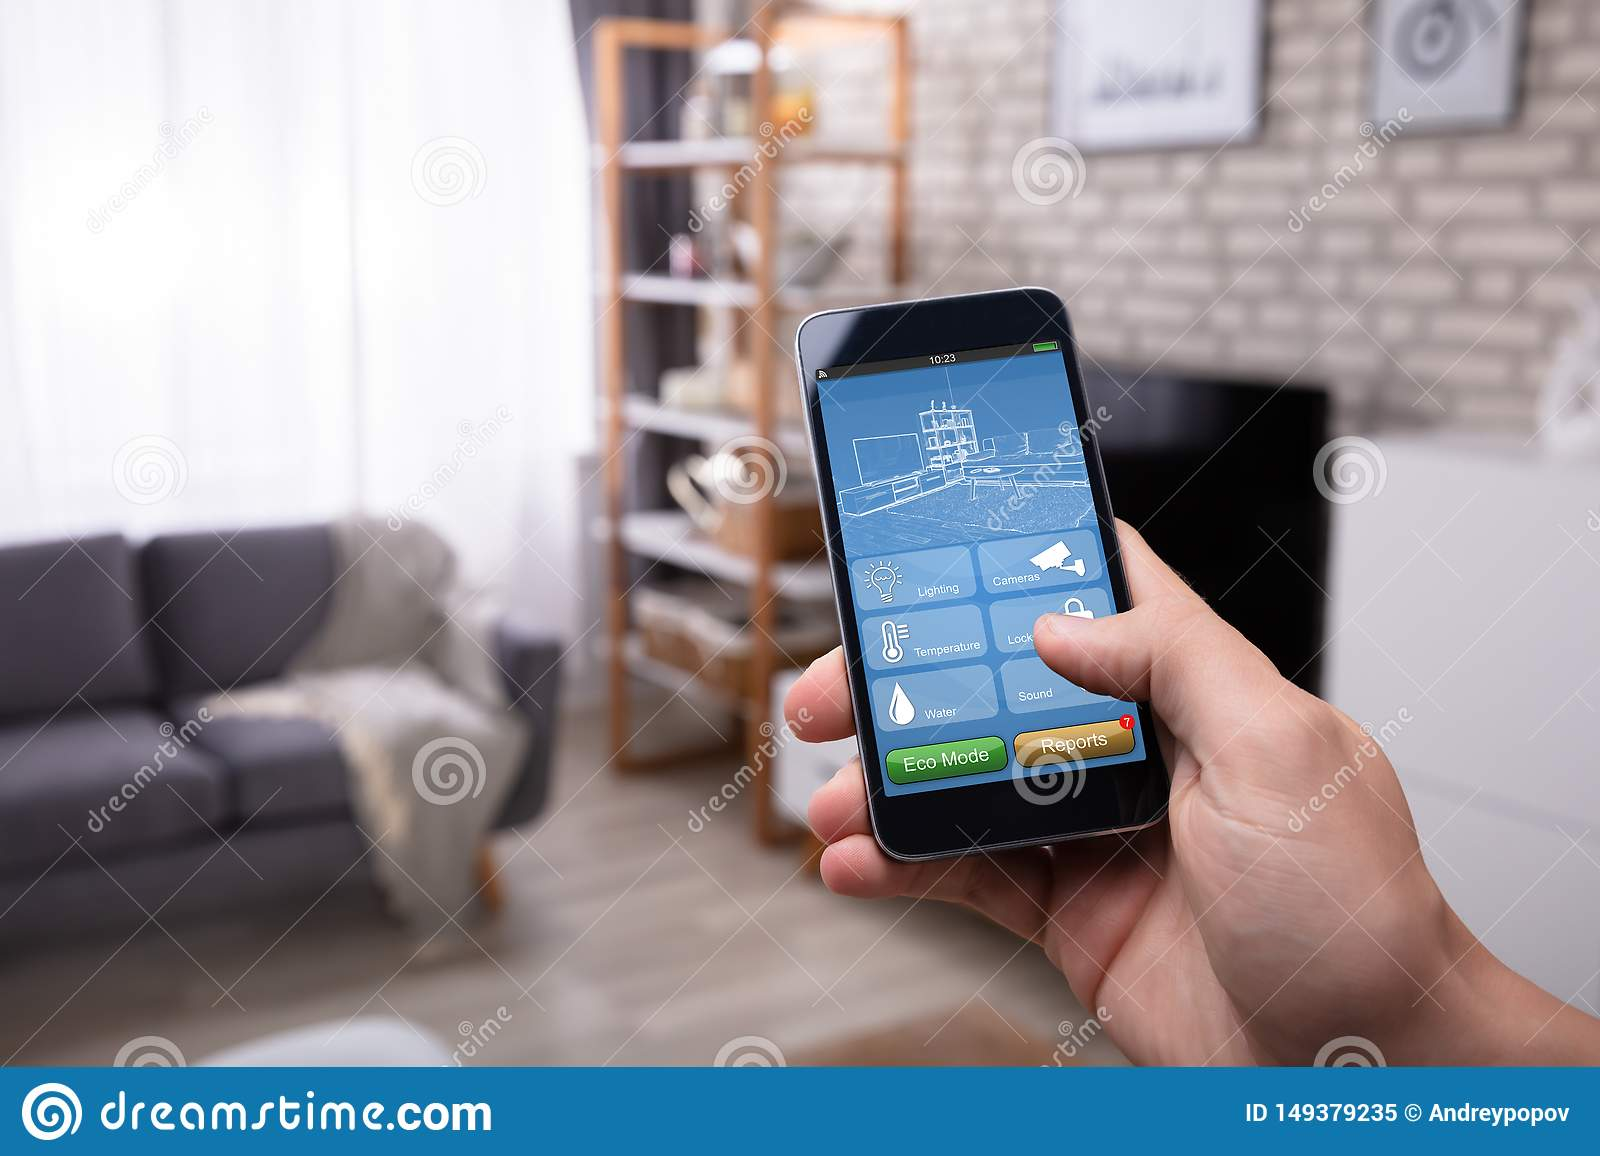 Man Using Smart Home Application On Mobile Phone